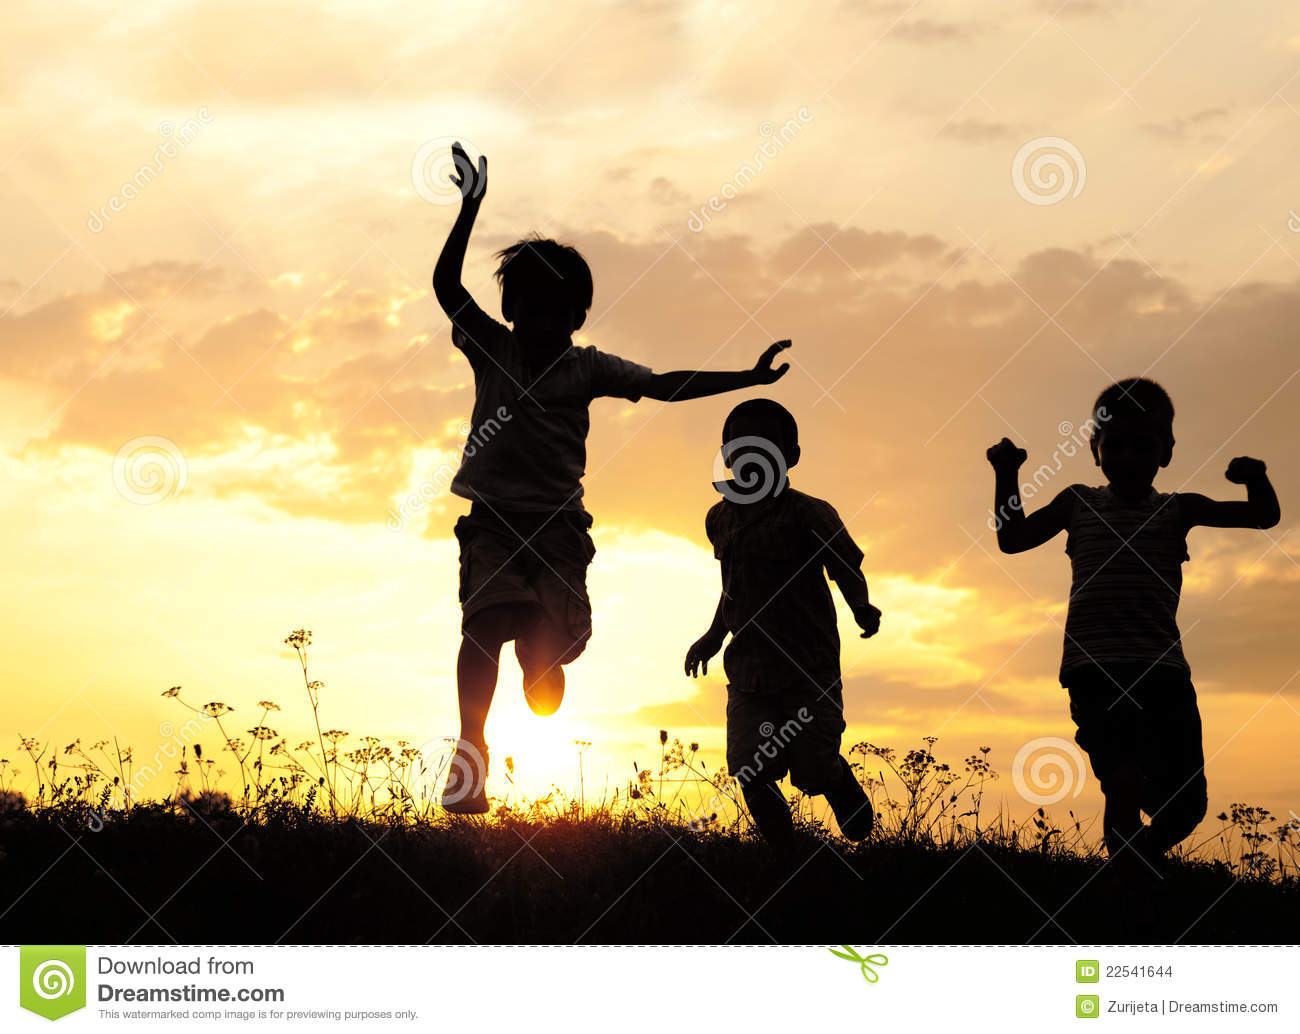 Silhouette, group of happy children